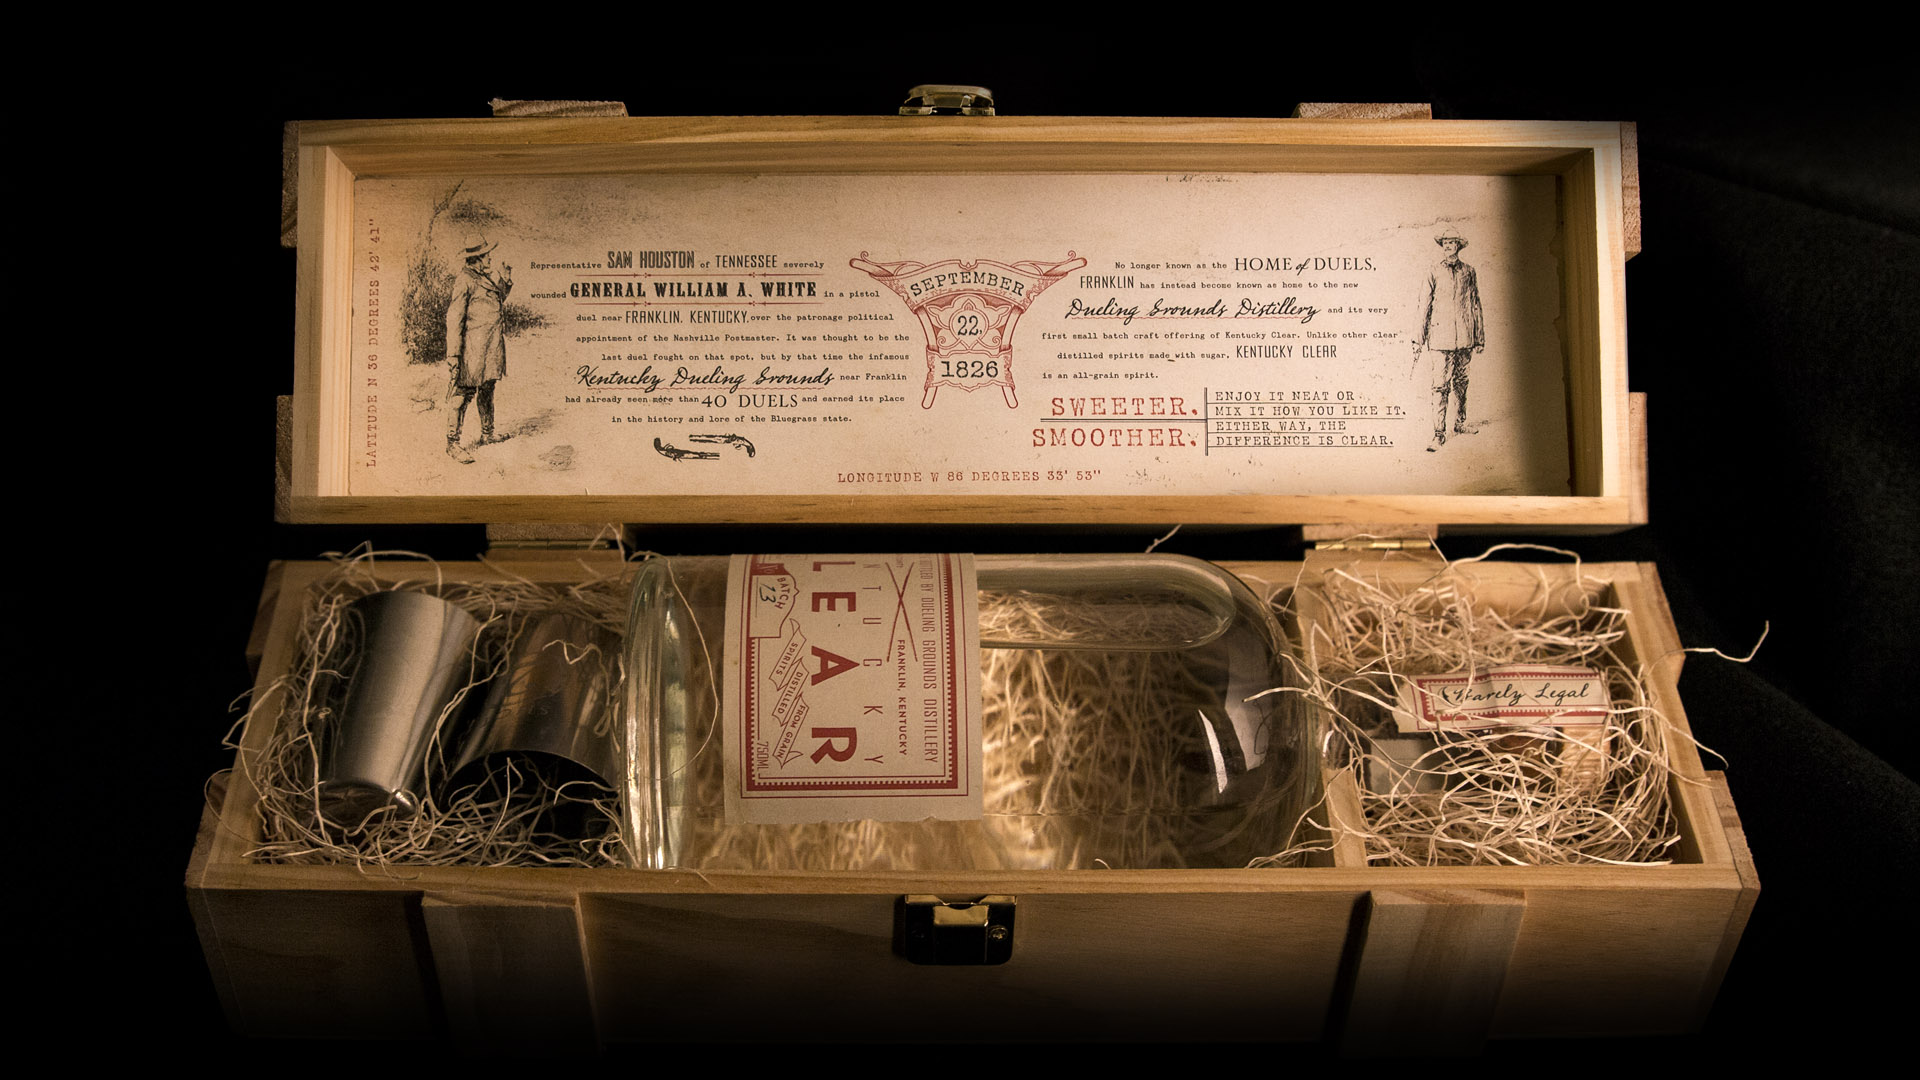 bohan | CPG | Dueling Grounds single bottle with silver shot glasses wooden crate design.